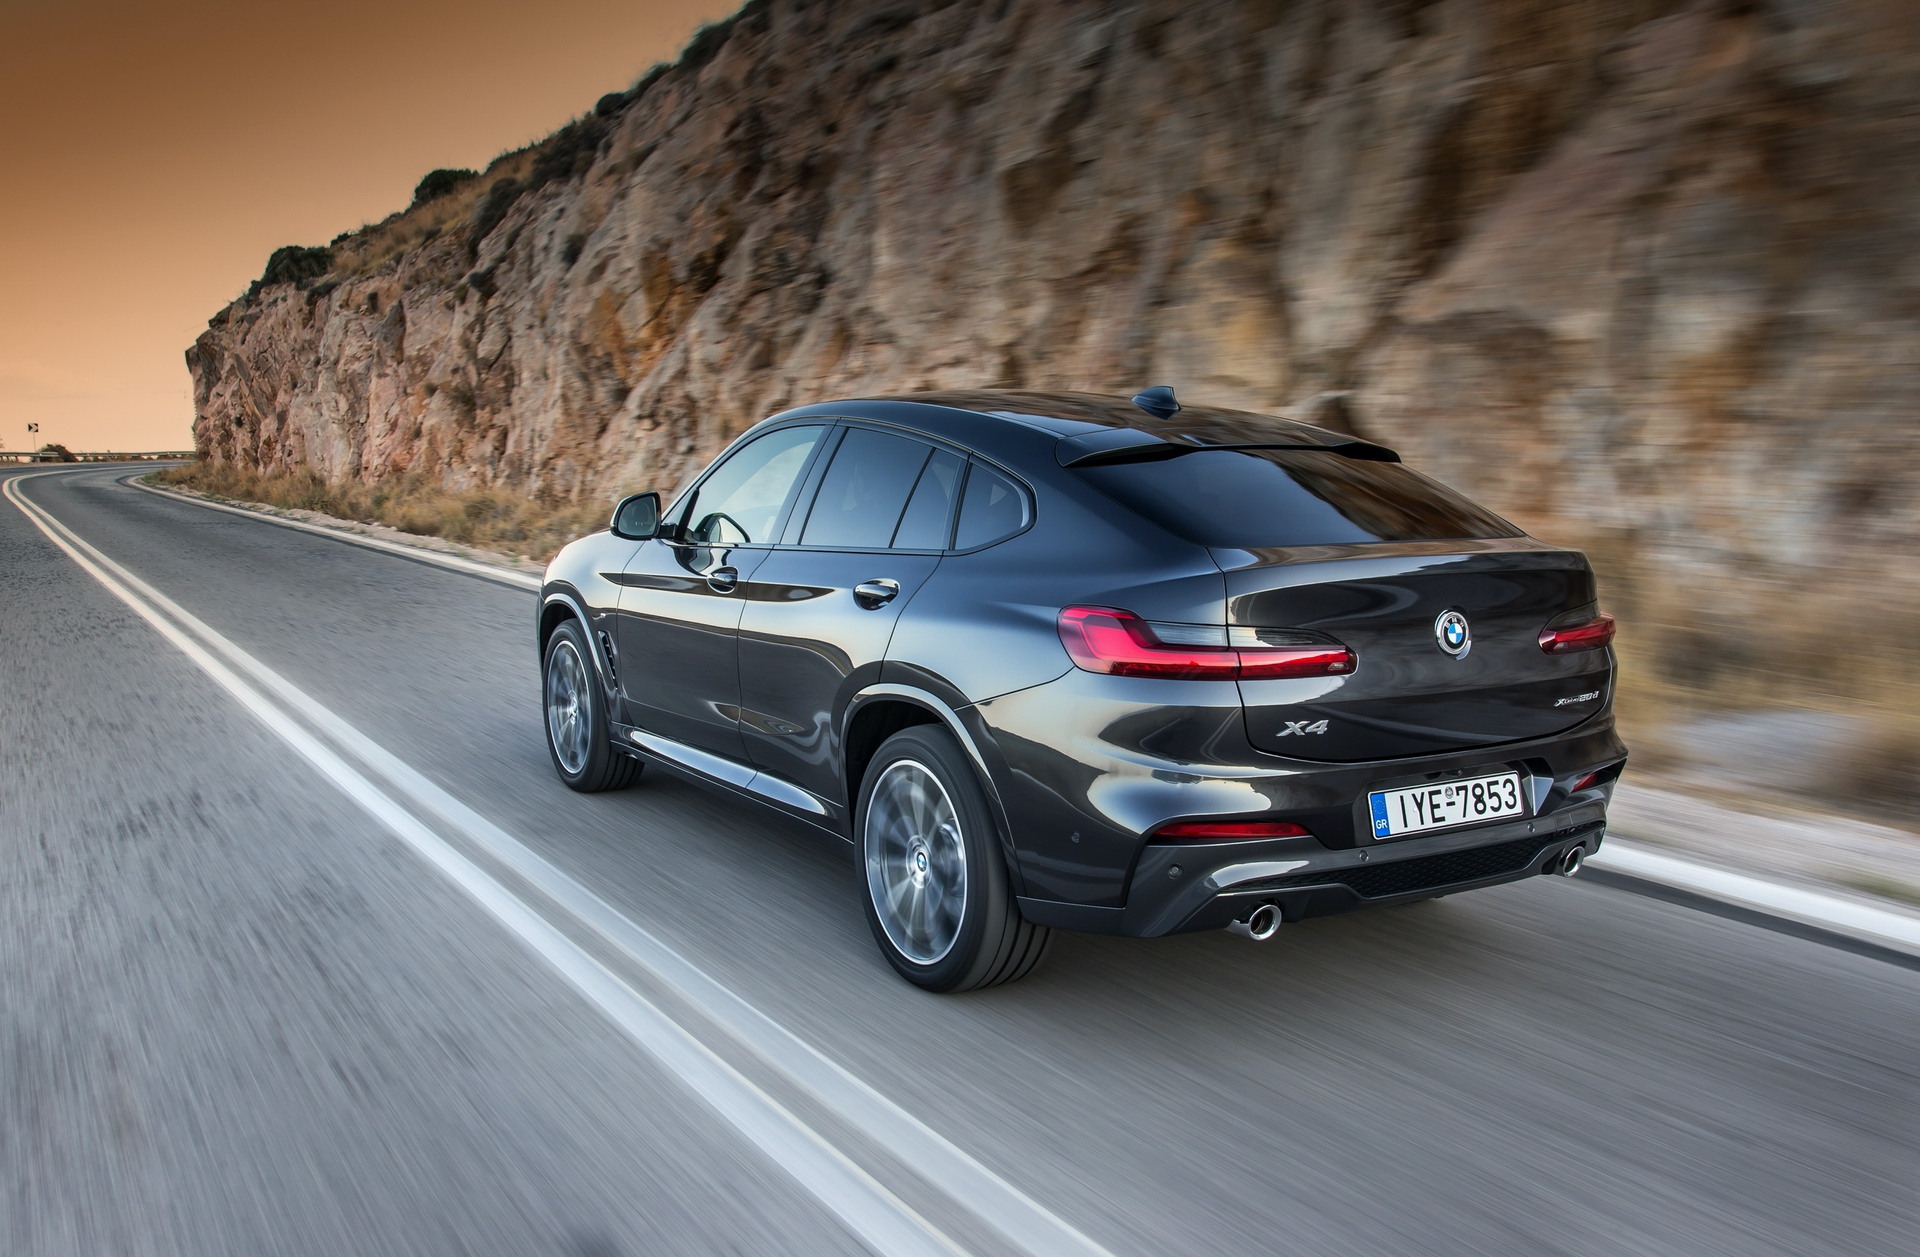 BMW_X4_greek_presskit_0102